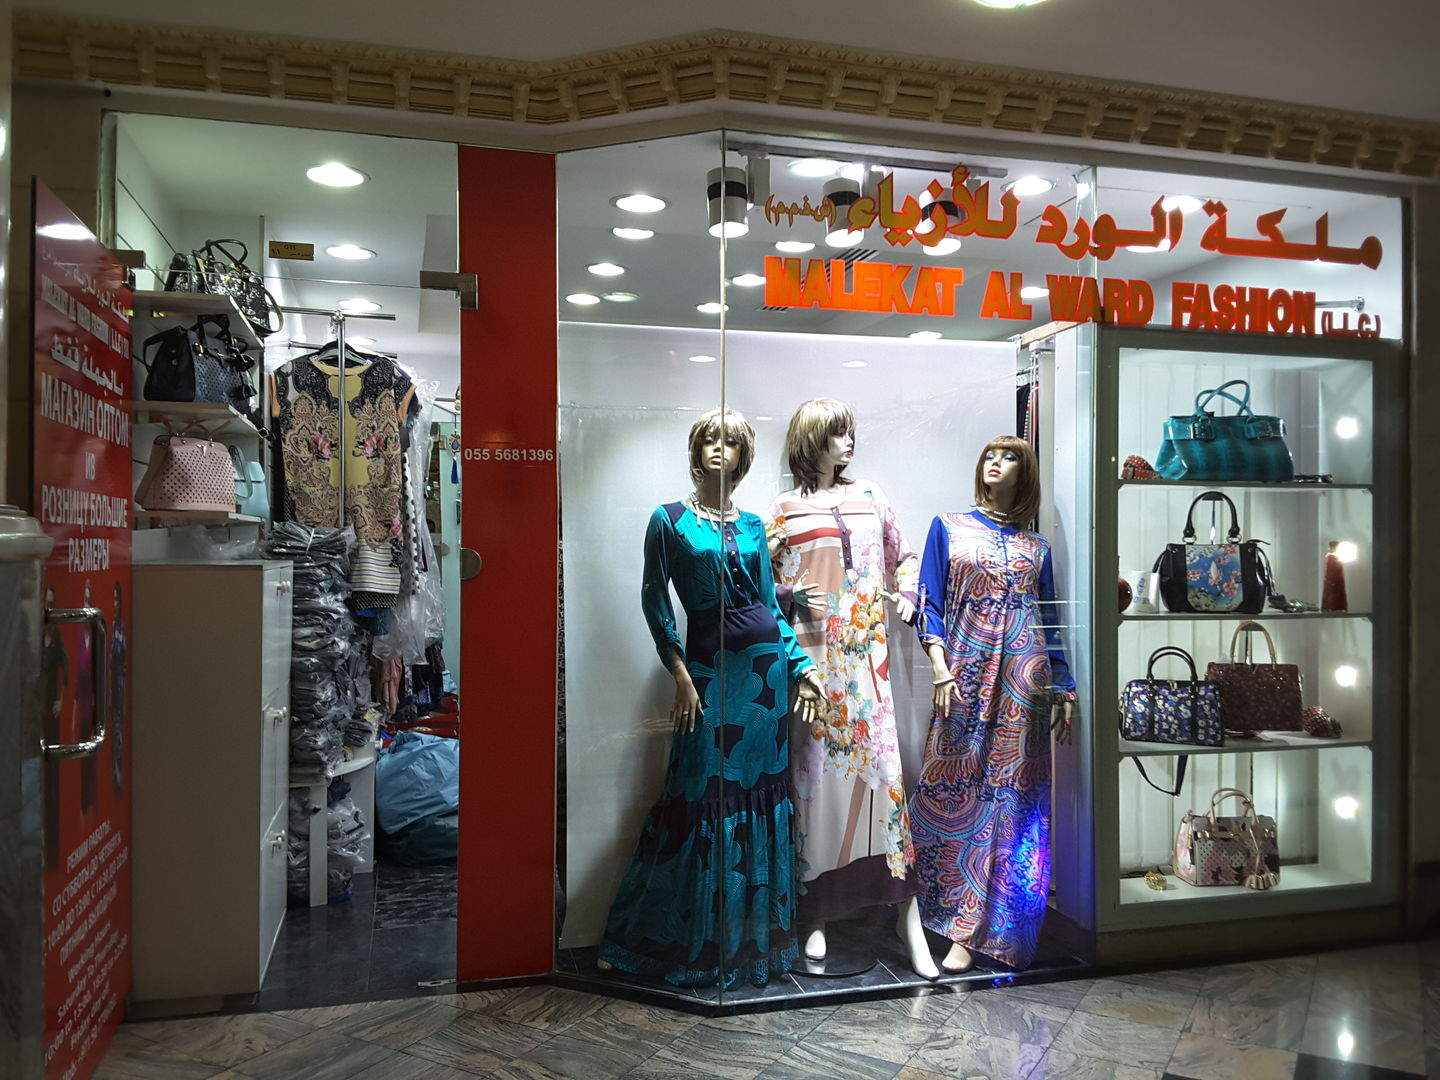 Walif-business-malekat-al-ward-fashion